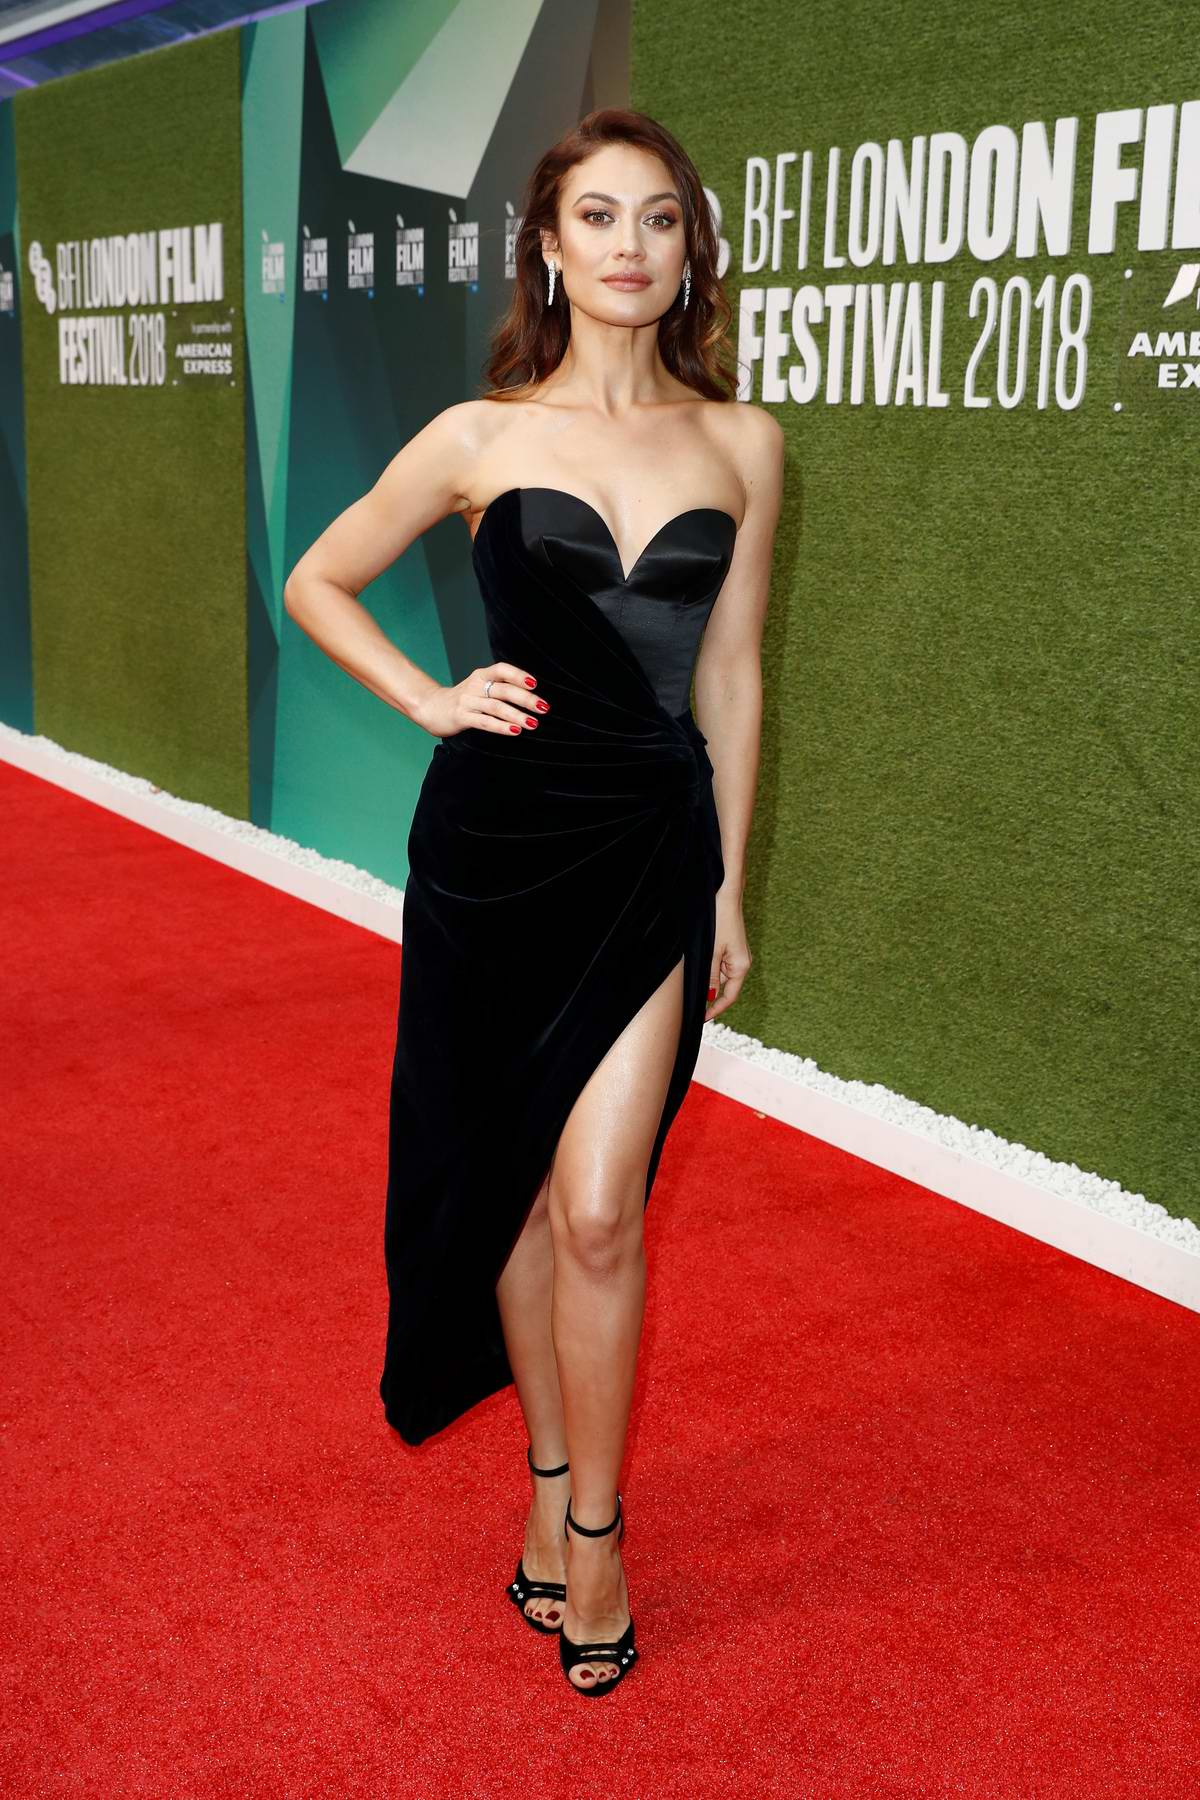 Olga Kurylenko attends 'The Man Who Killed Don Quixote' and Laugh Gala at the 62nd BFI London Film Festival in London, UK